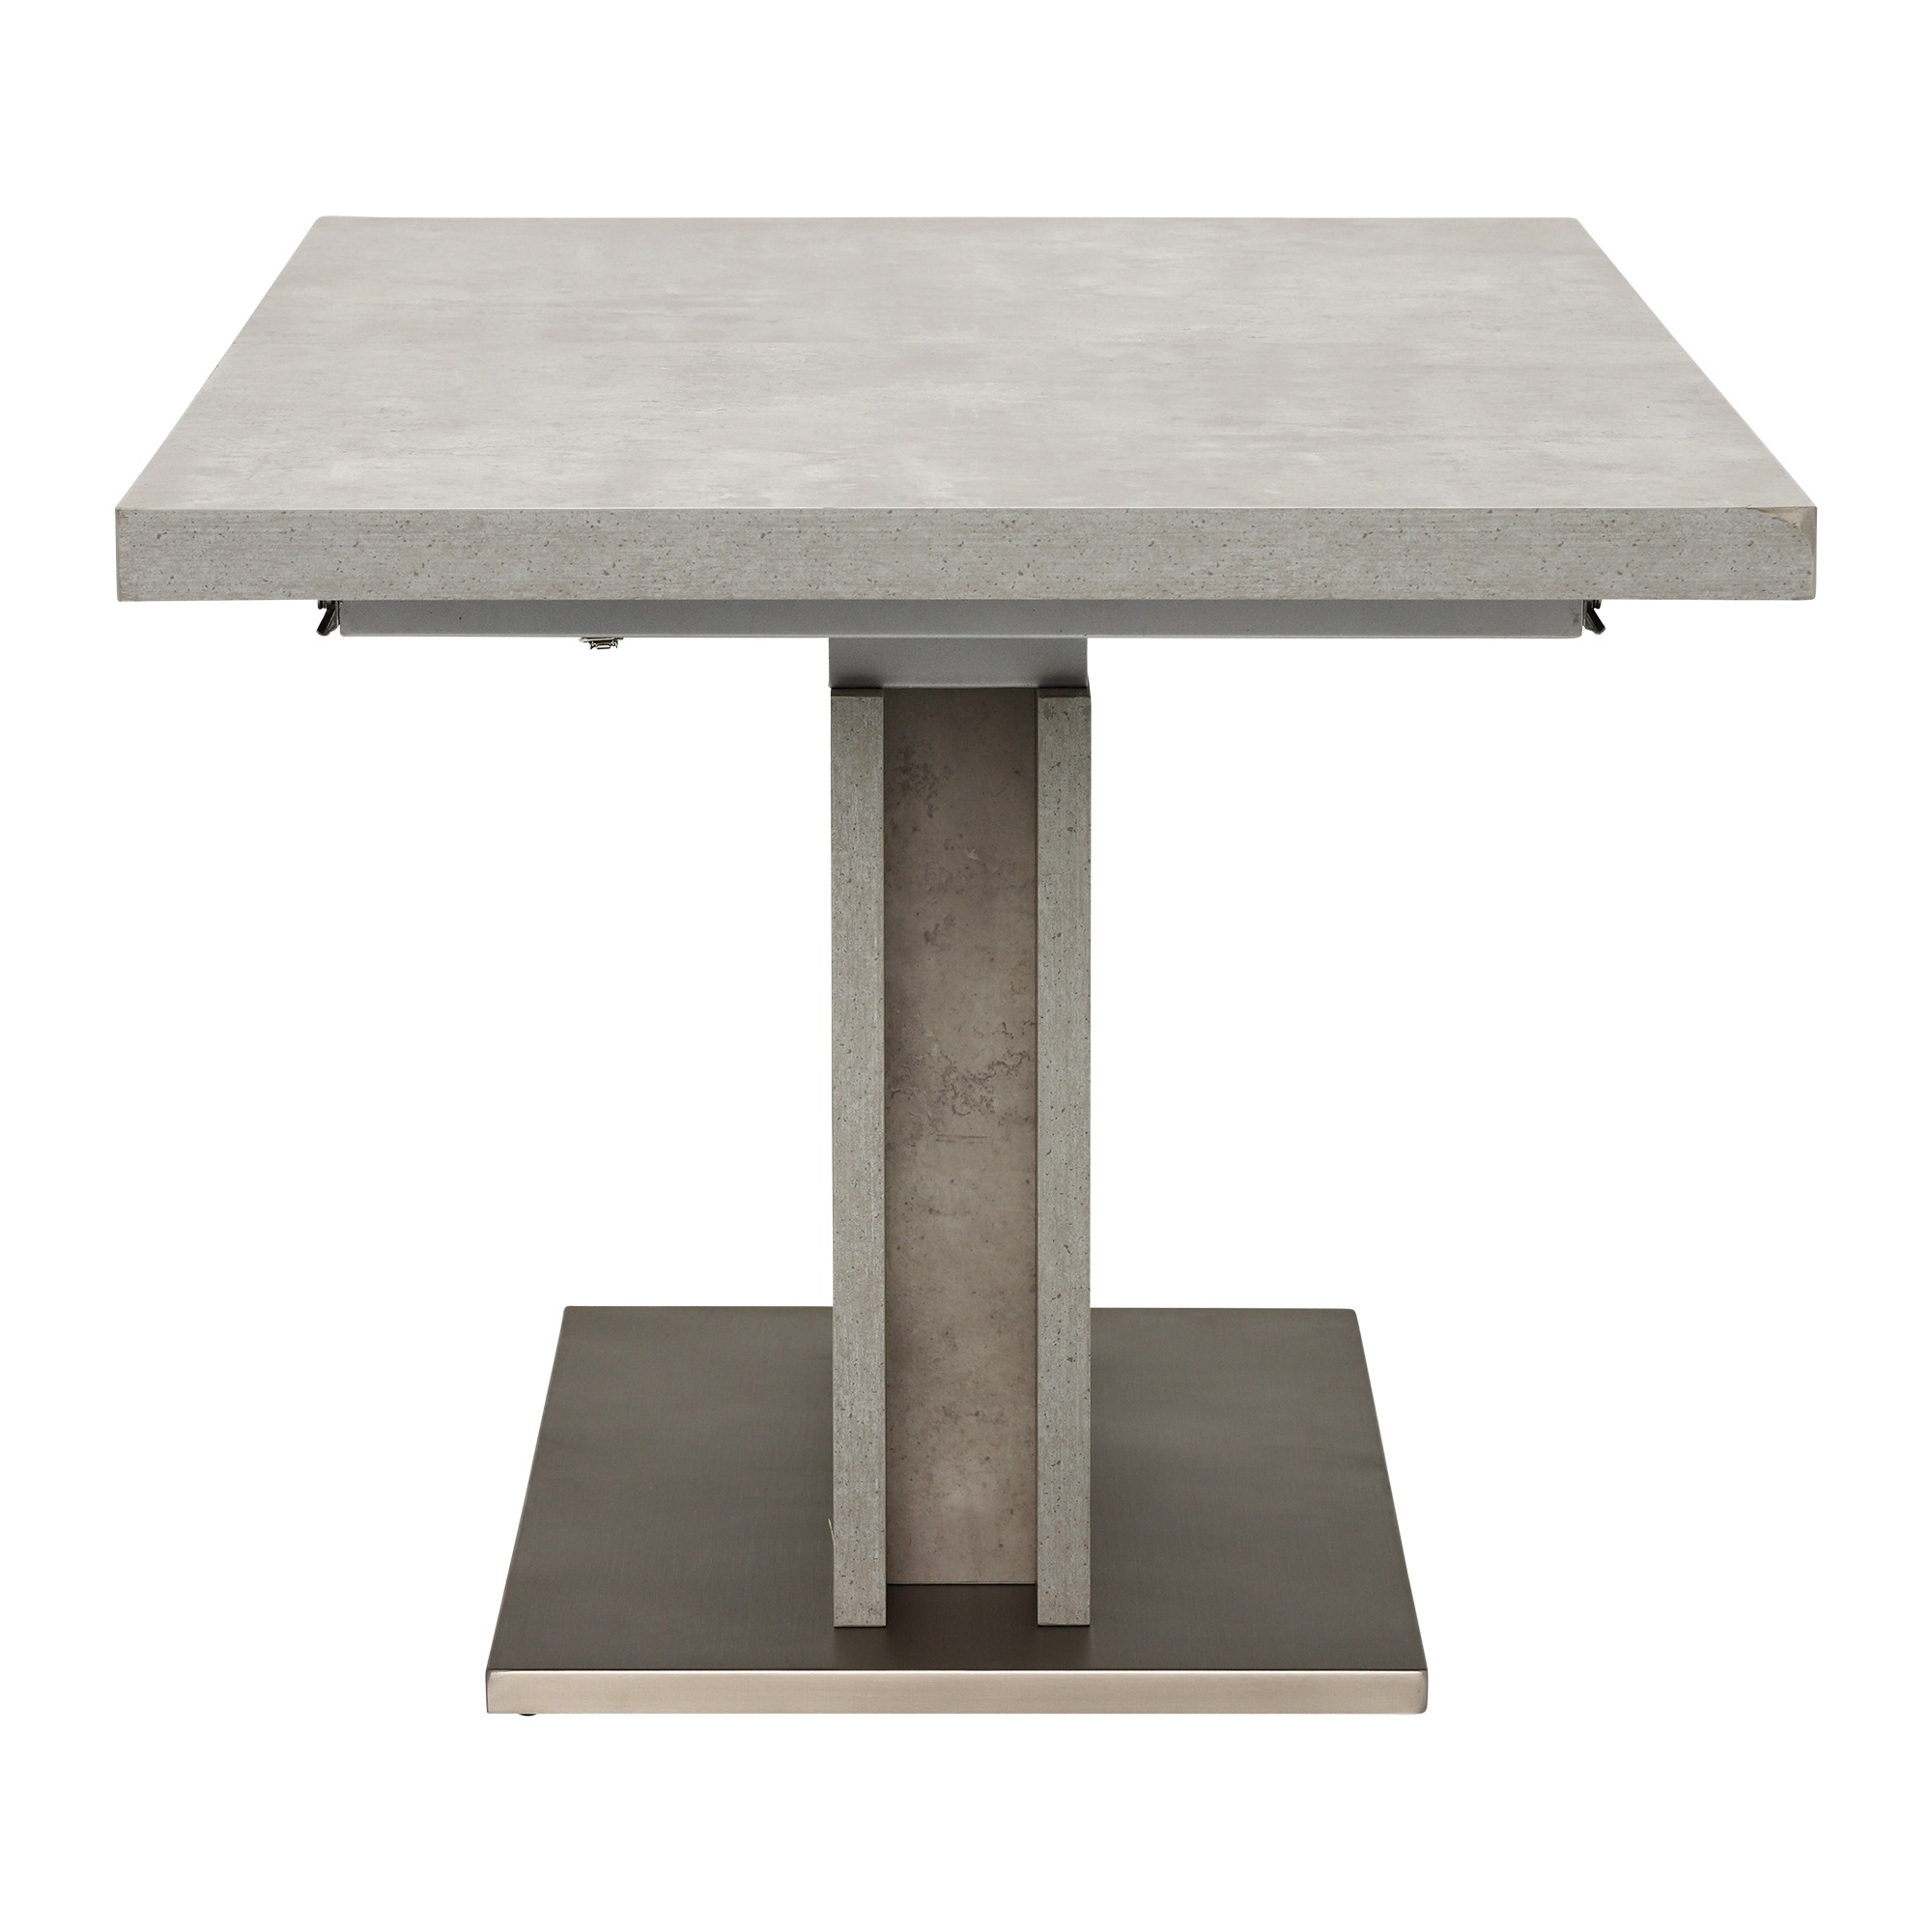 CONCRETE LOOK EXTENDING TABLE - END DETAIL